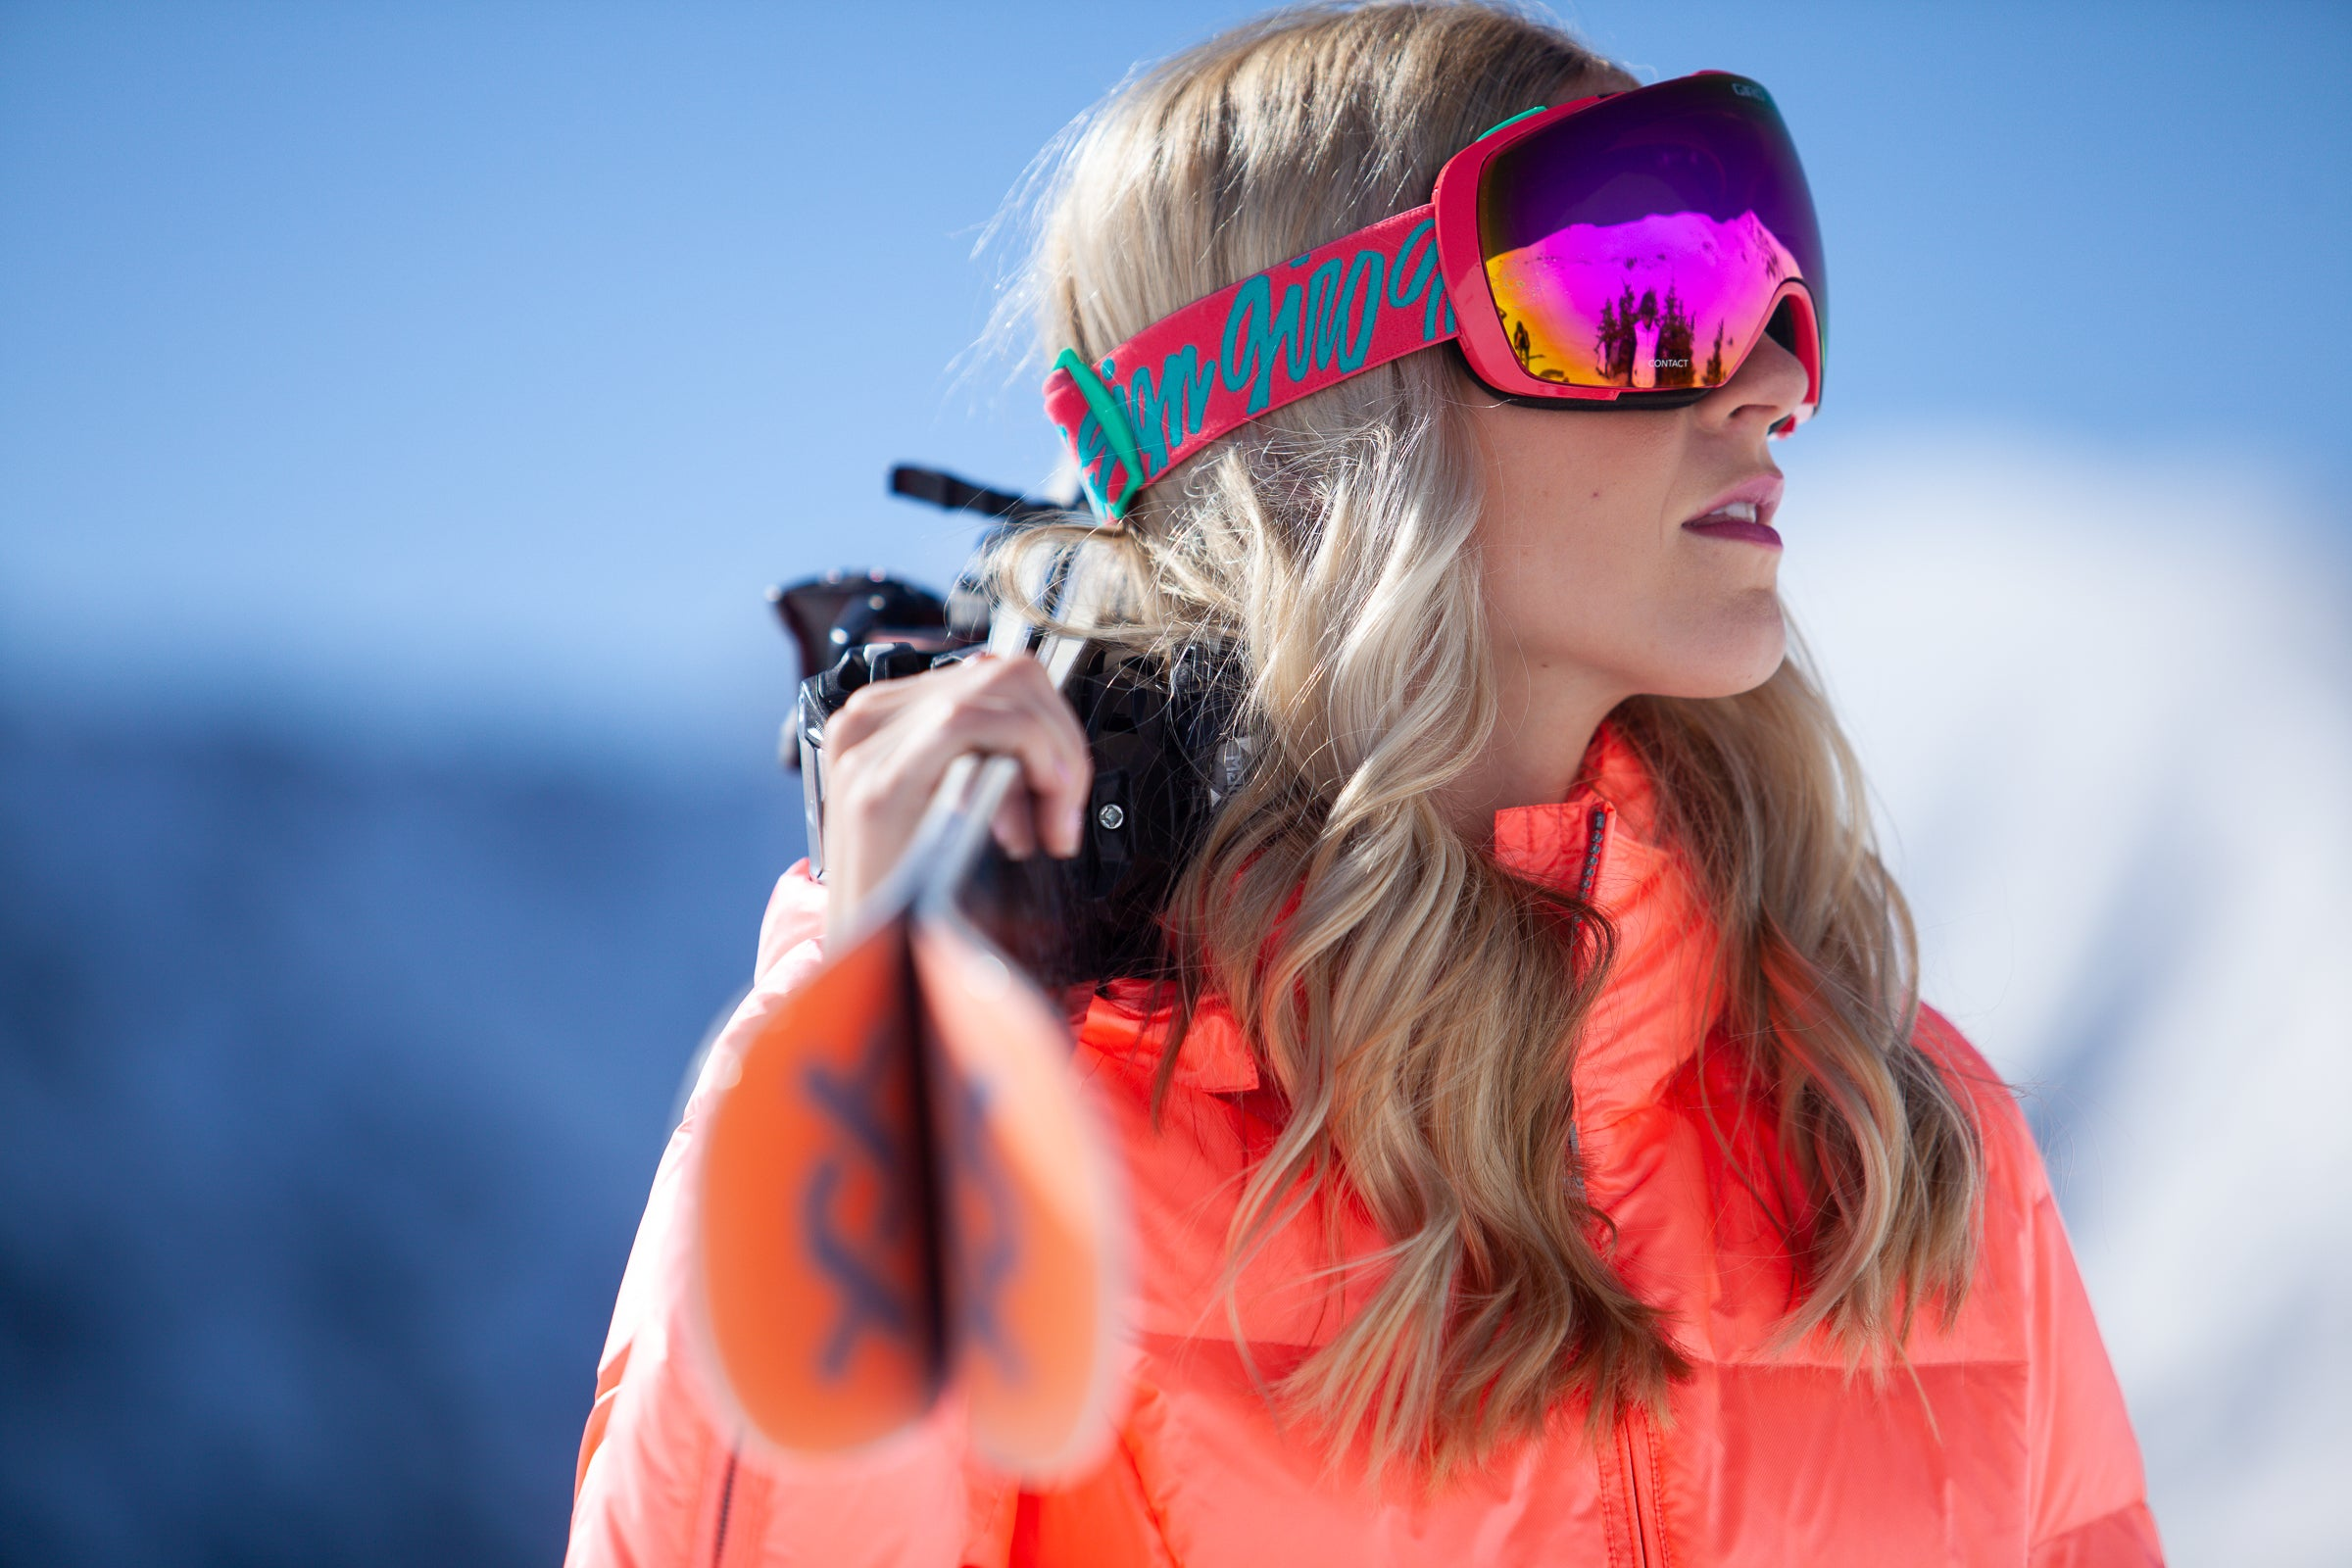 ski jackets, ski pants, luxury skiwear, ski apparel, ski fashion, fur ski apparel, fur trim, Eve Jacket, Skea Limited, Skea Limited - Skea Limited